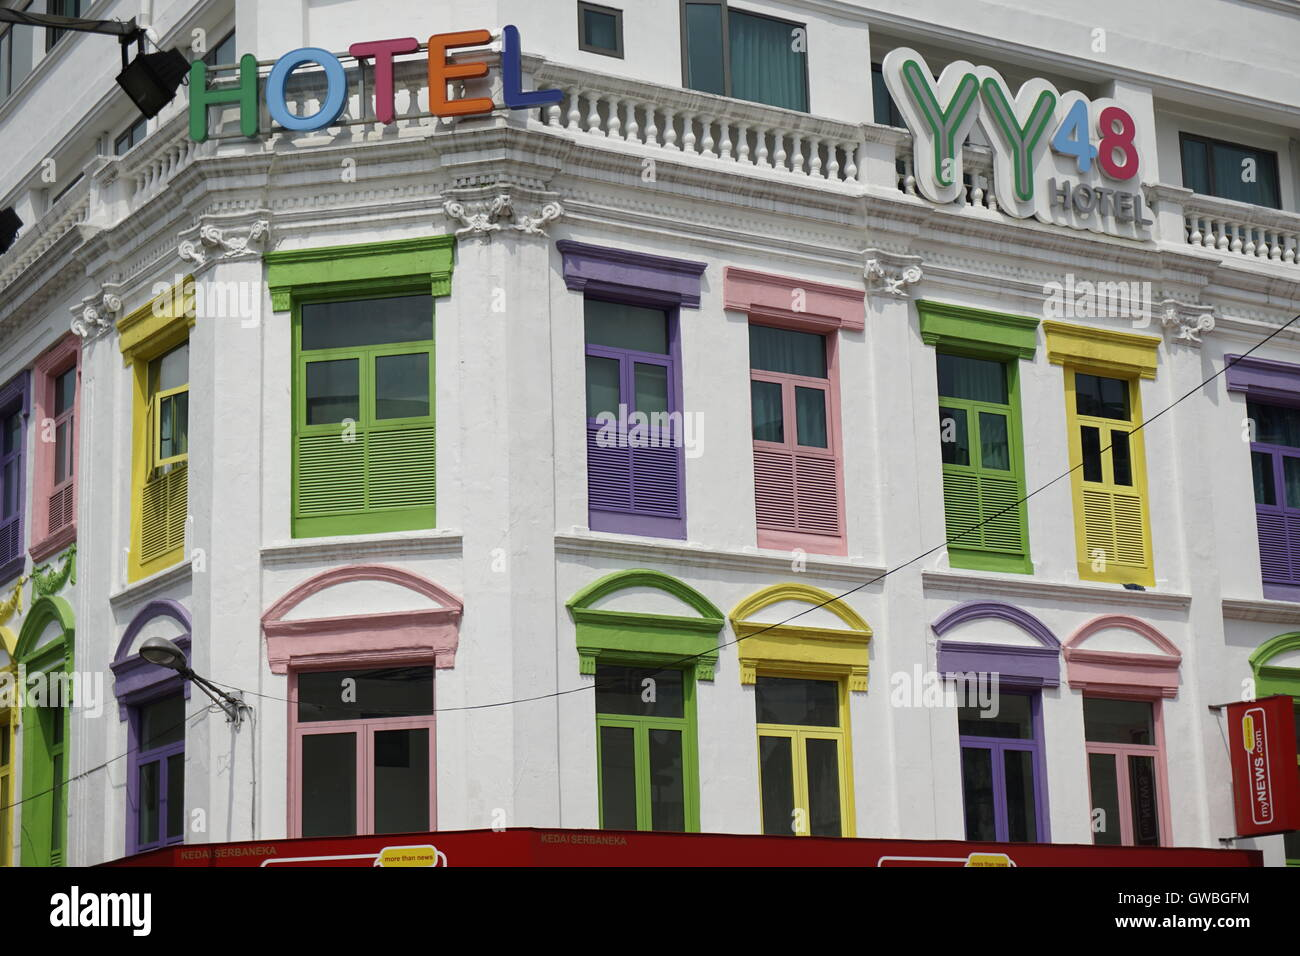 colonial shophouse building in downtown Kuala Lumpur with colorful window panes - Stock Image